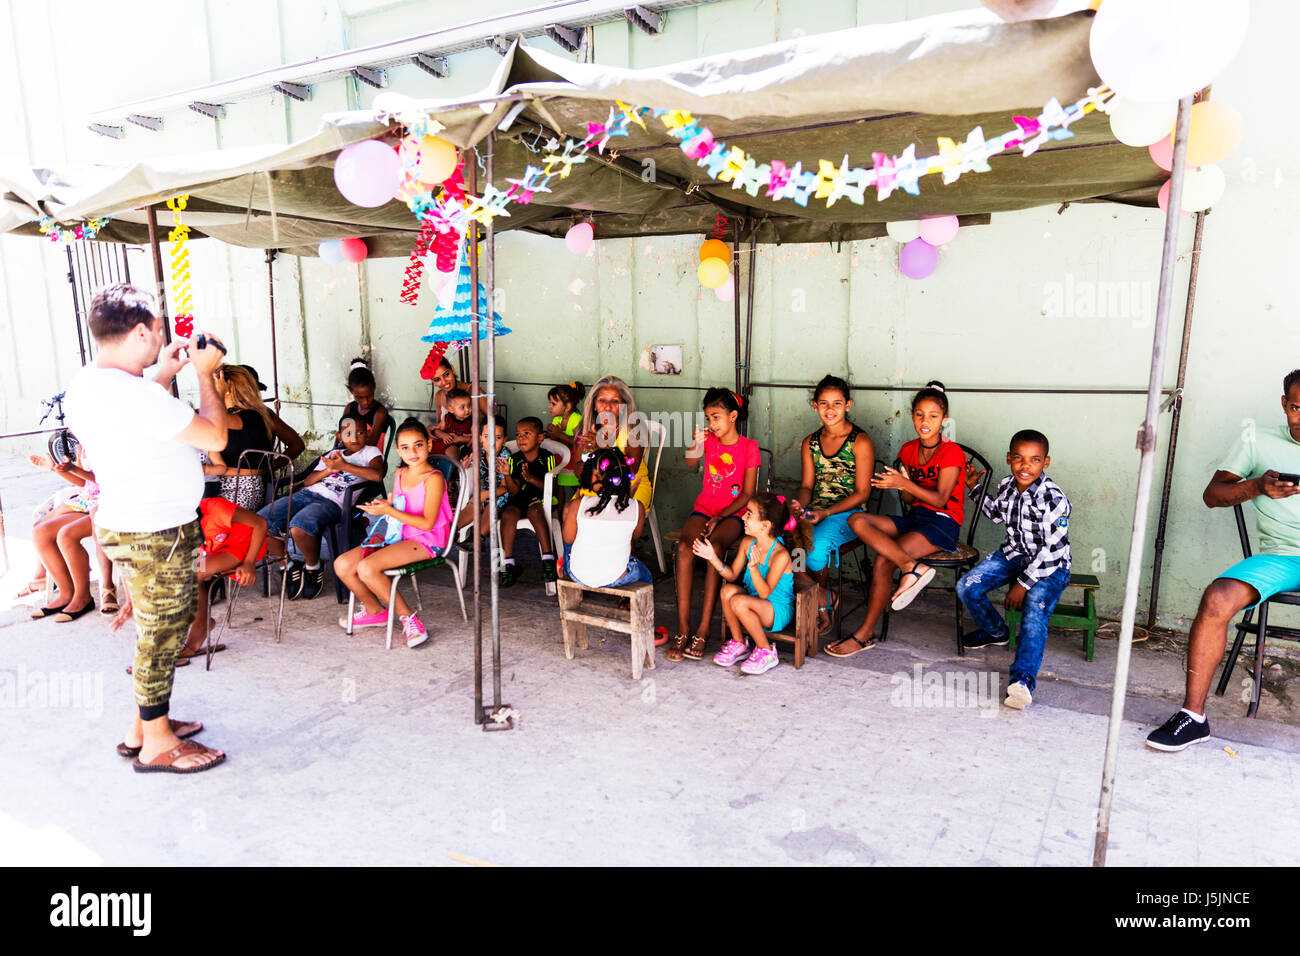 Childrens party in Havana Cuba, Cuban kids party, kids party Cuba, Kids party Havana cuba, Children's party, - Stock Image